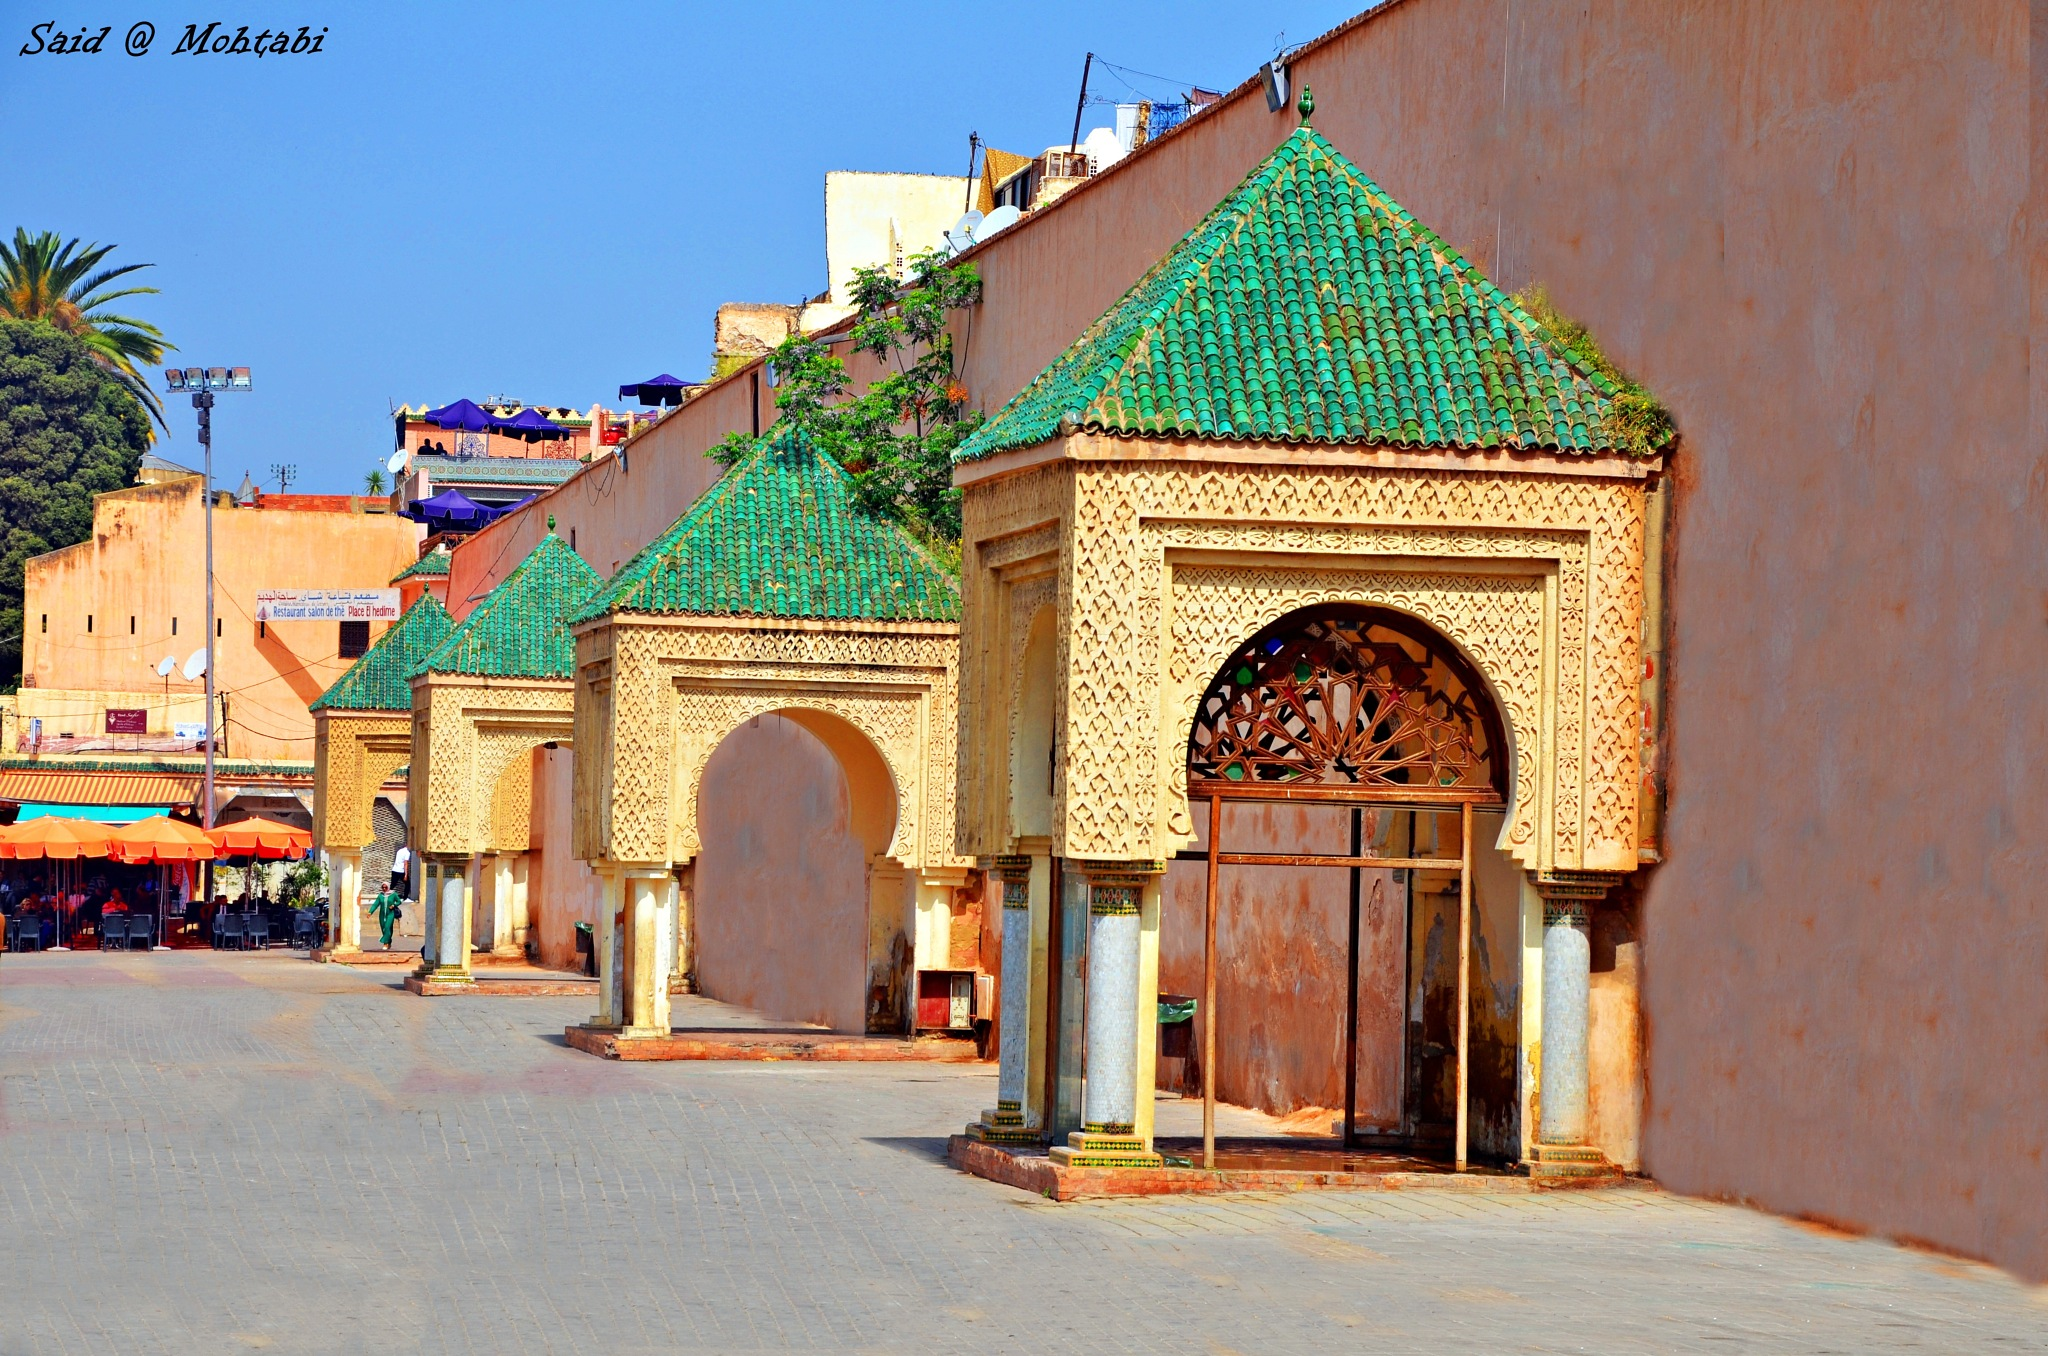 Meknes City Morocco by Said Mohtabi